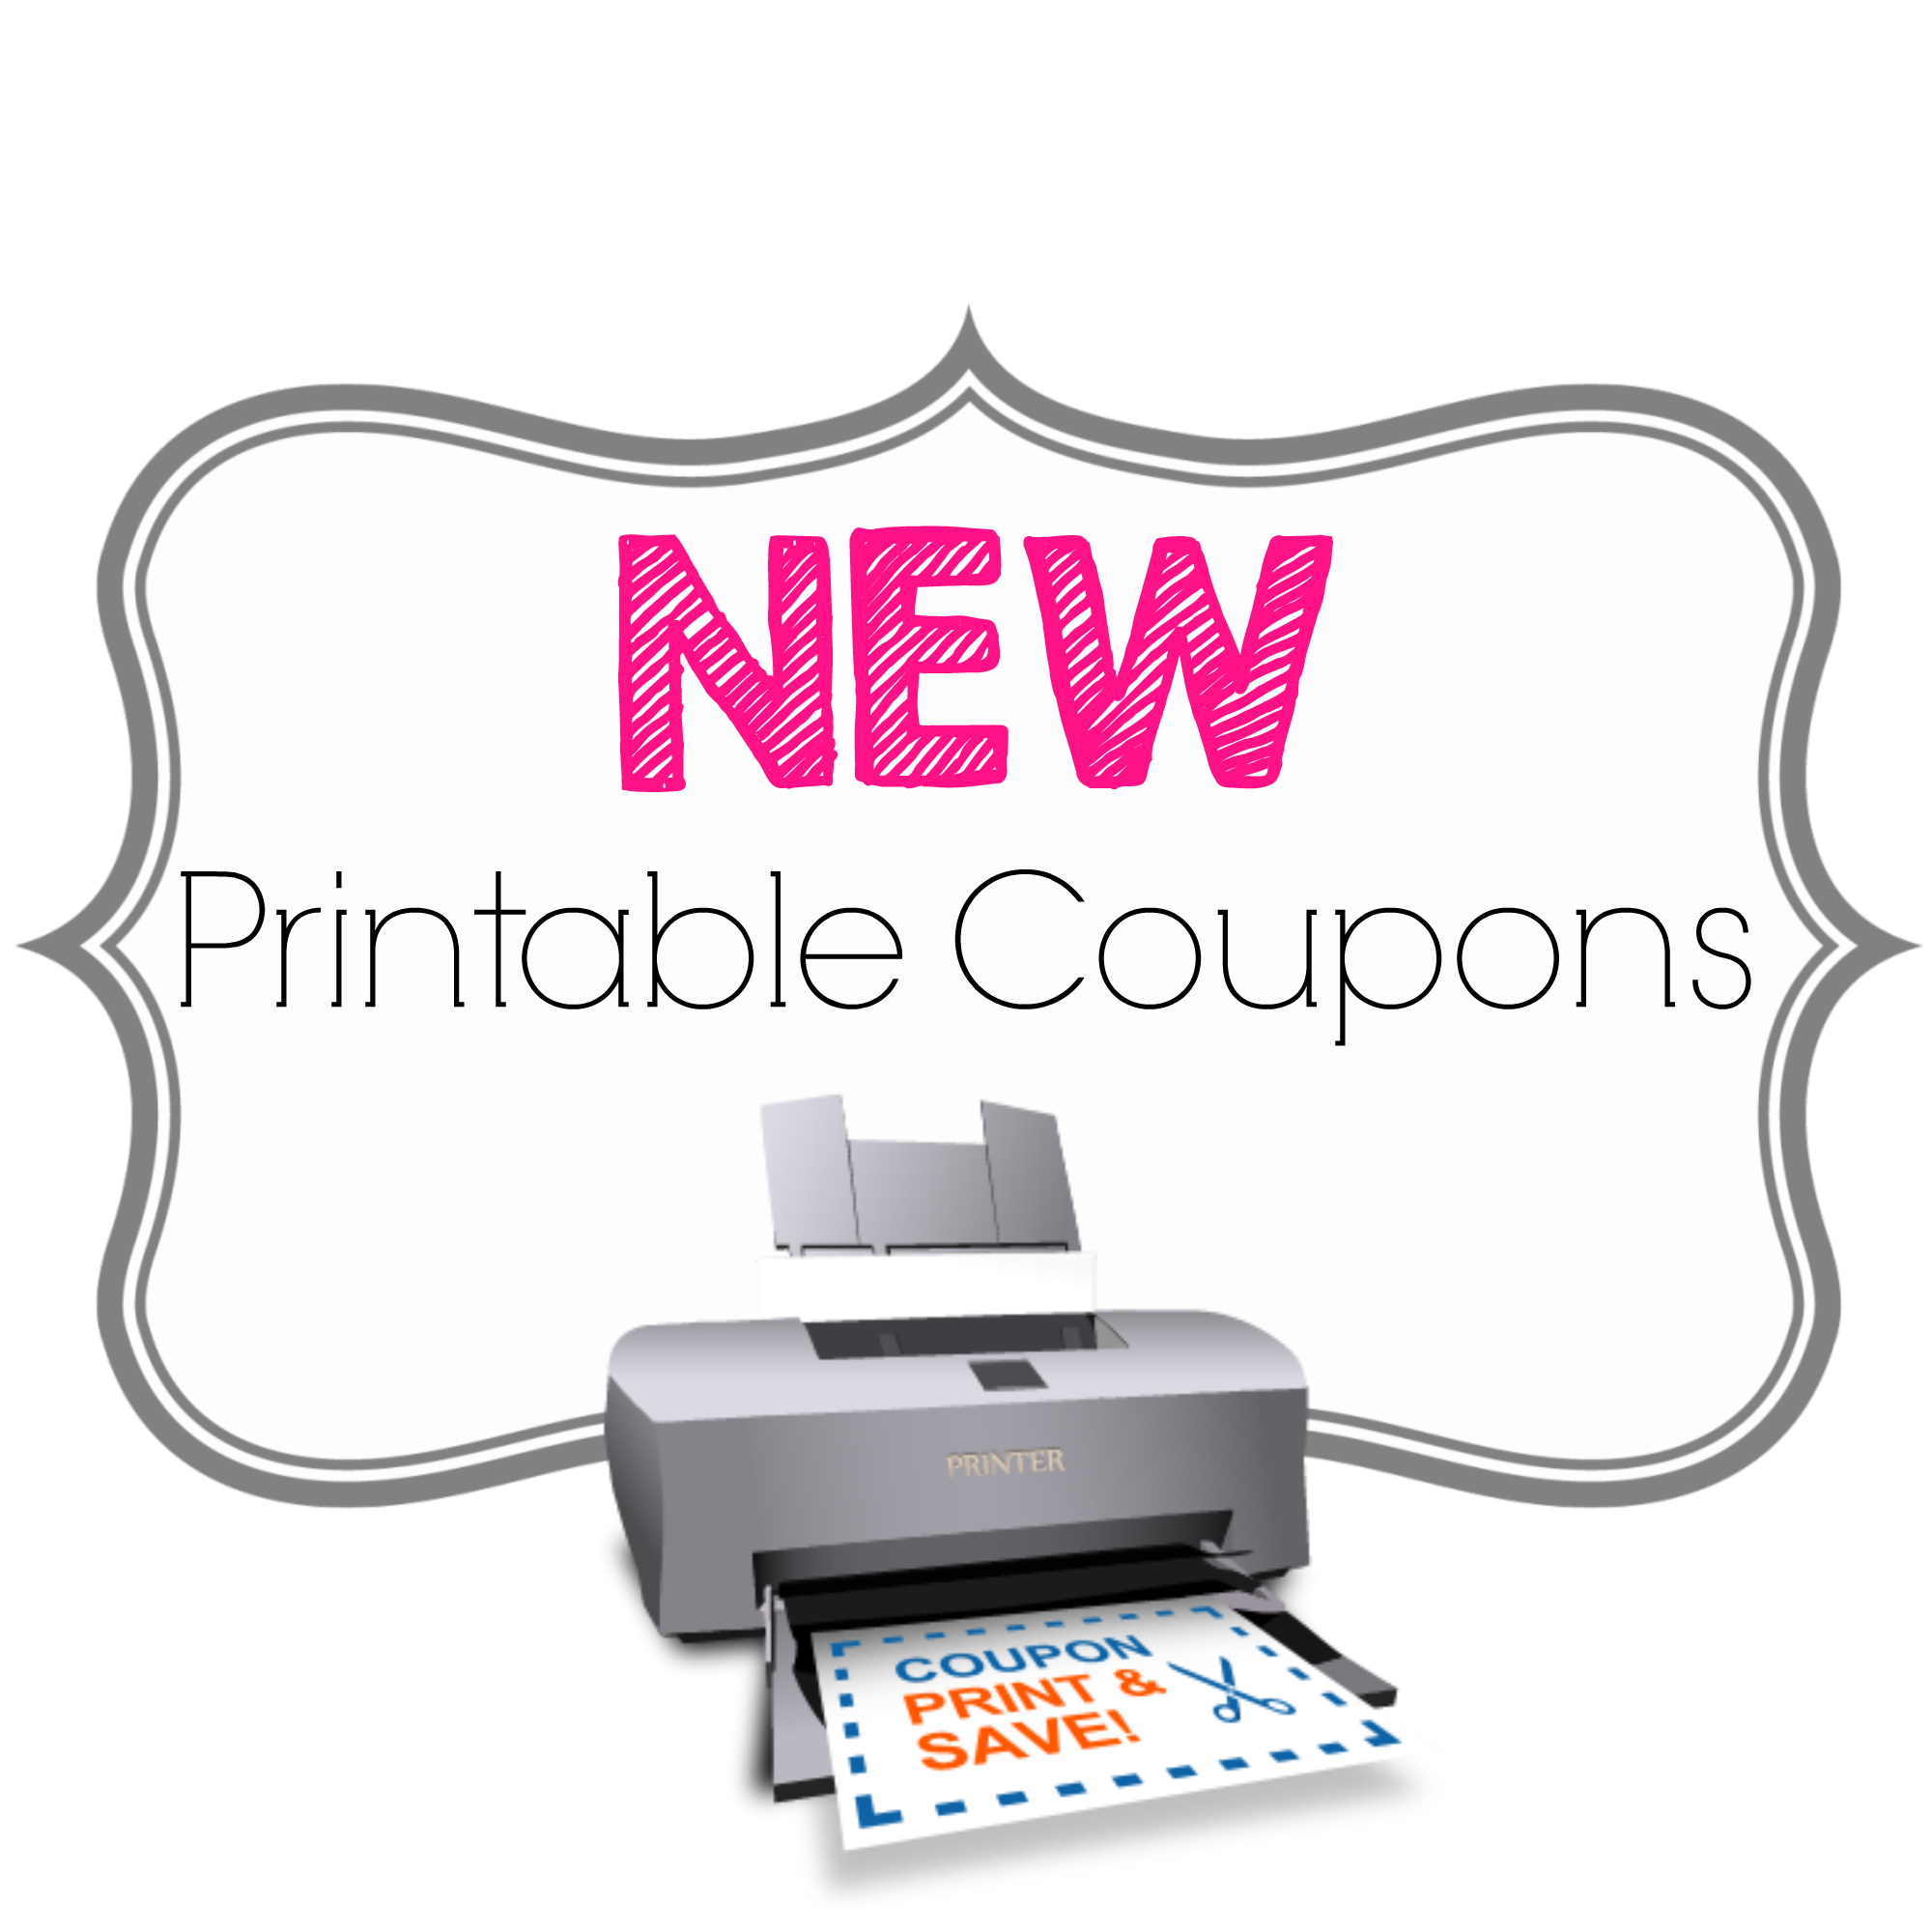 High Value Printable Coupons, Laundry Detergent Coupons, Diaper Coupons, Hair Color Coupons, Grocery Coupons, Pasta Sauce Coupons, Coupons.com, Saving Star